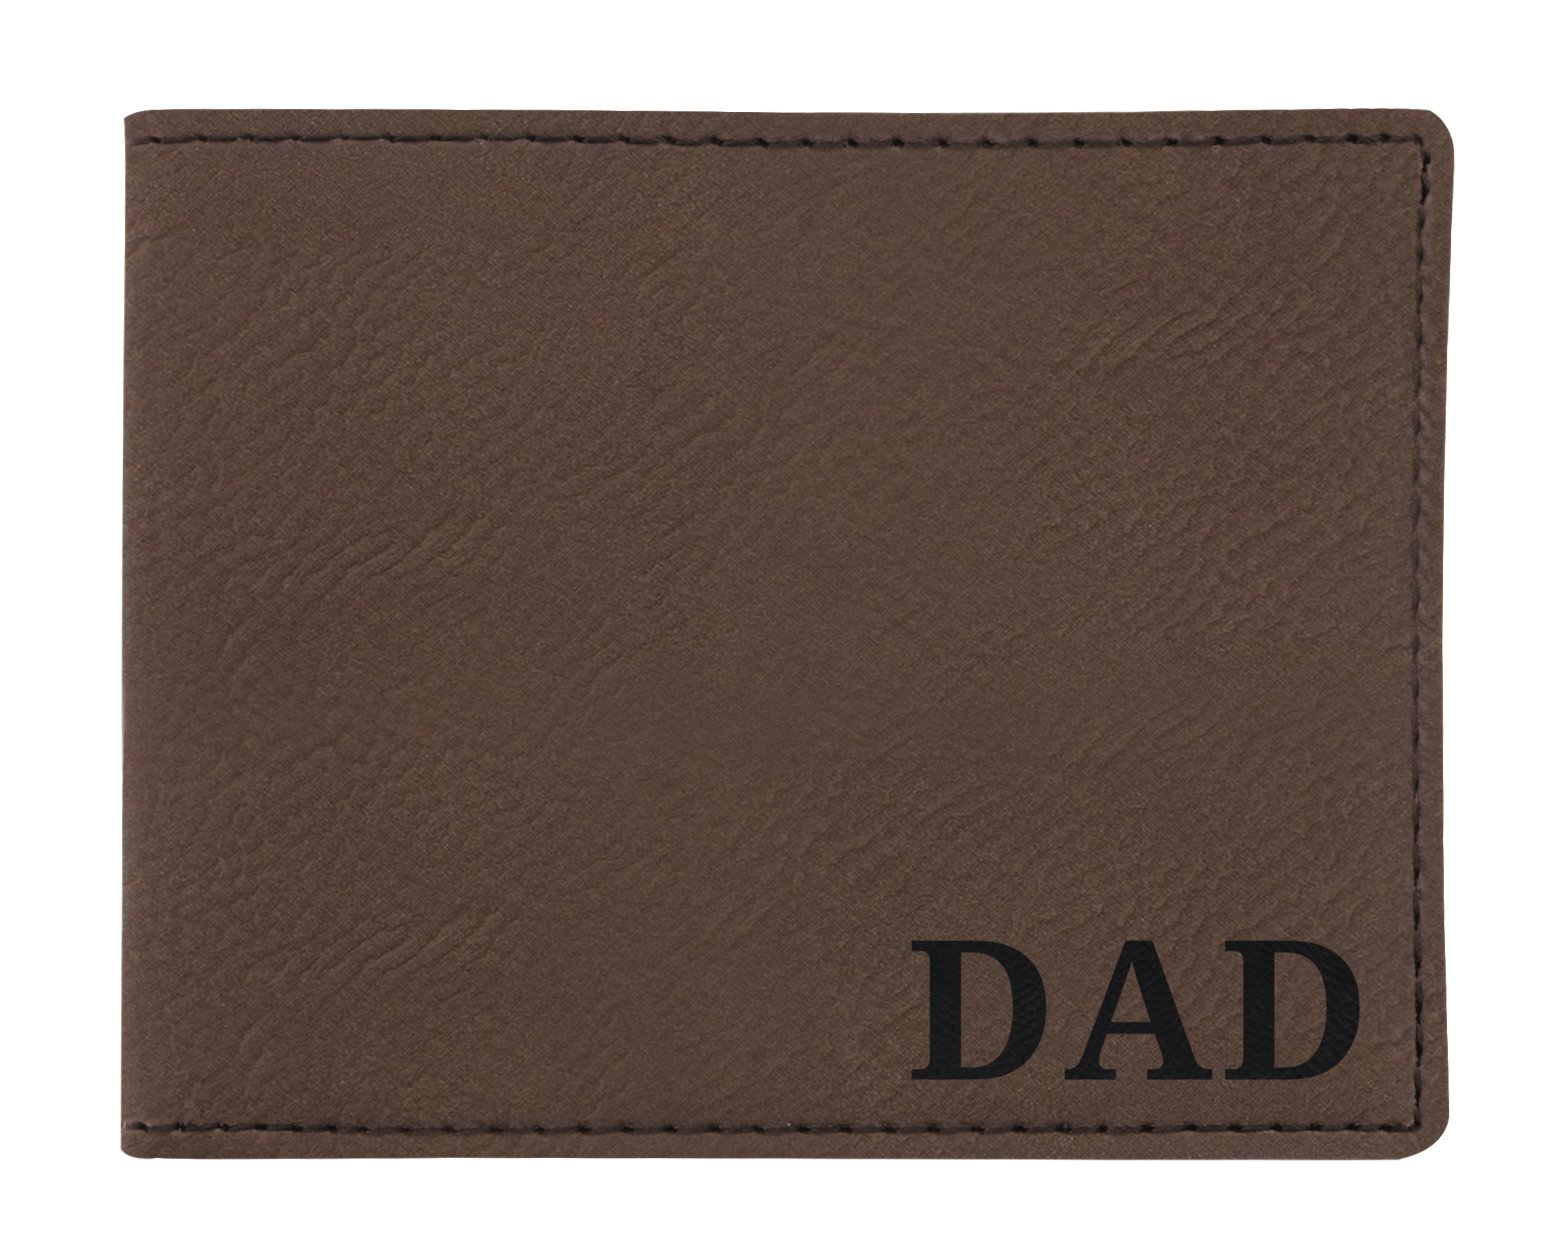 Birthday Gifts for Dad Engraved Wallet Retirement Gifts for Dad Birthday Gifts Laser Engraved Leatherette Bifold Wallet Brown